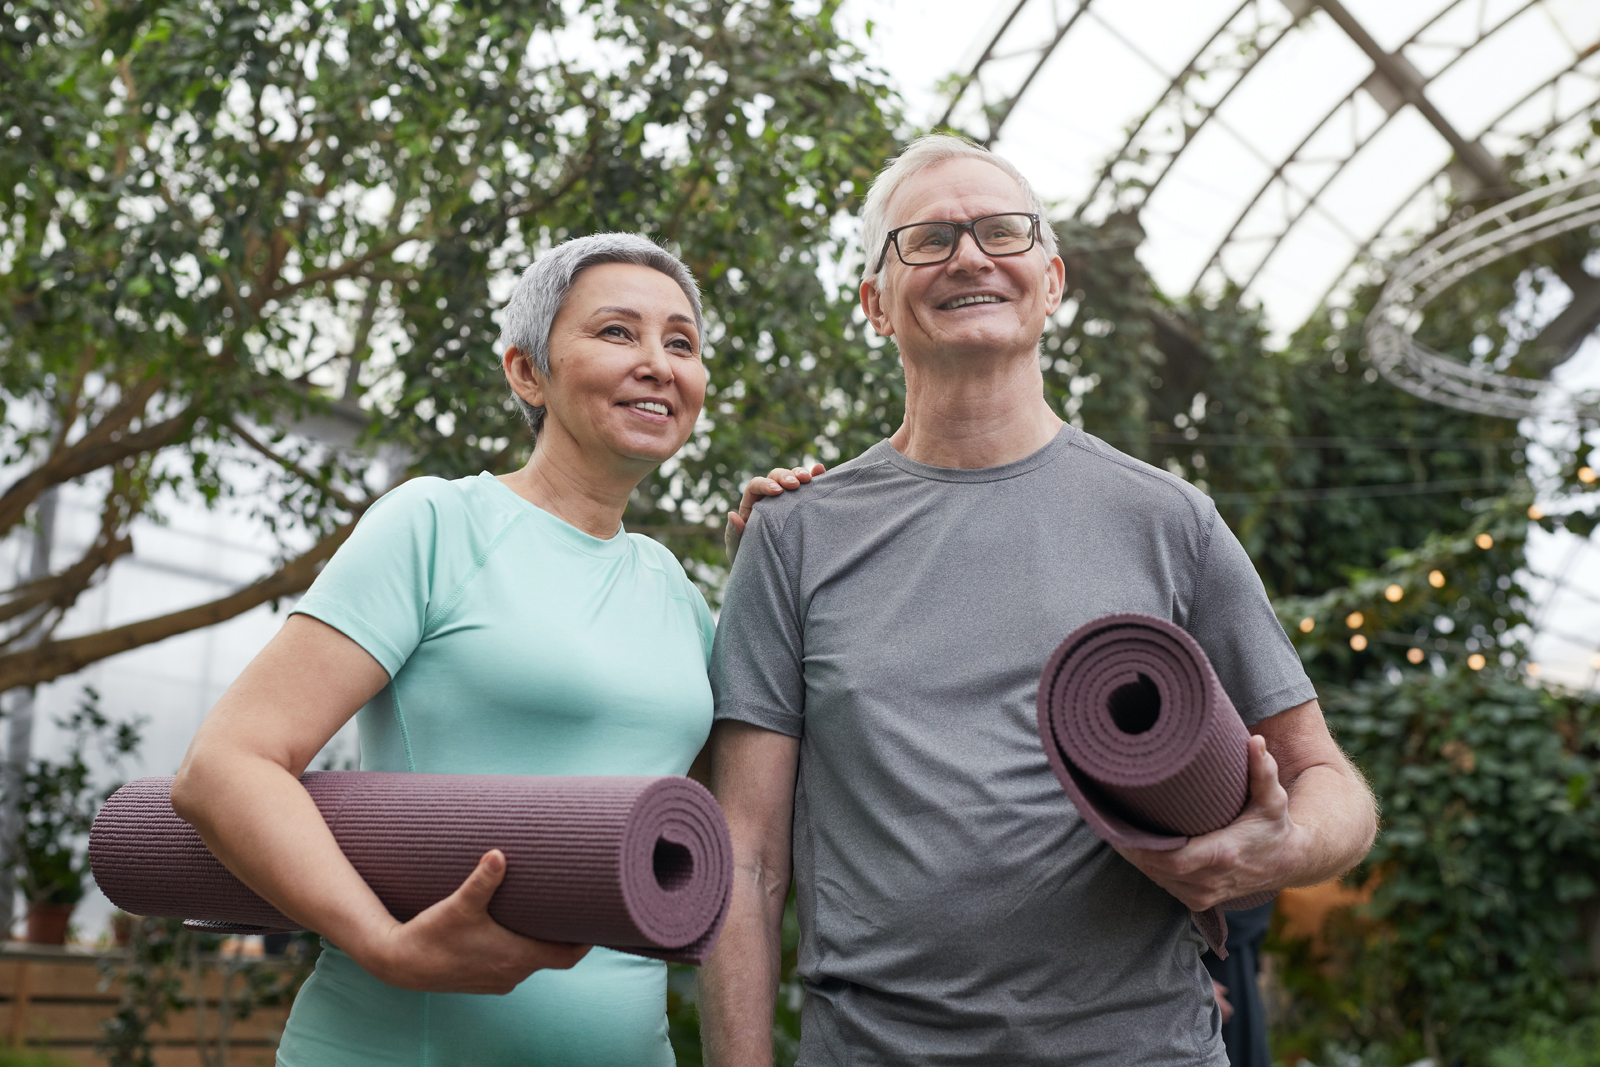 6 Best Ways For Seniors to Stay Active this Spring